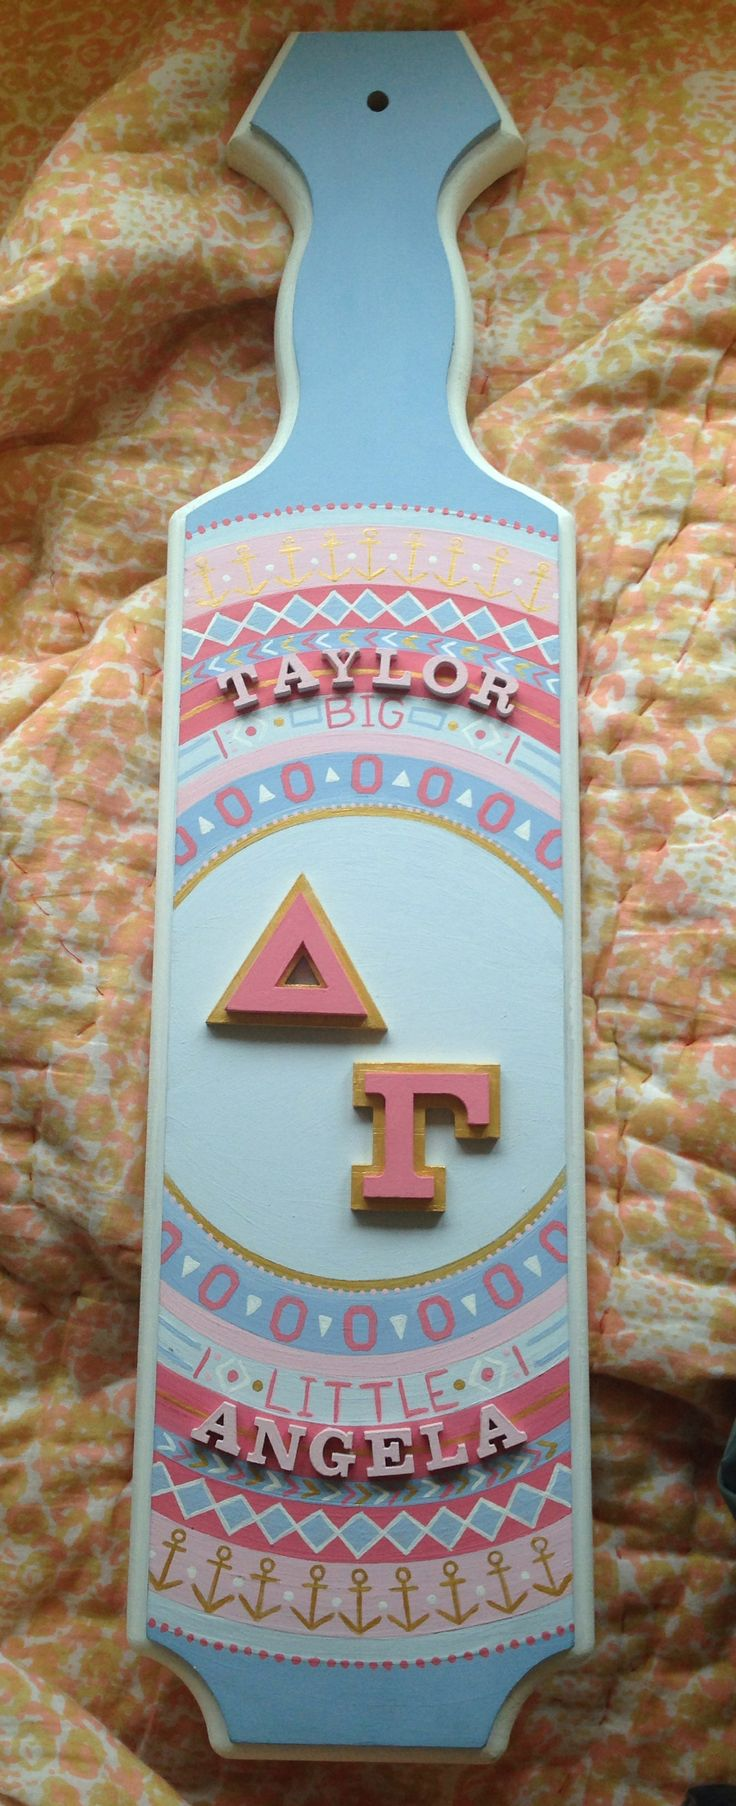 The paddle I made for my amazing big :)